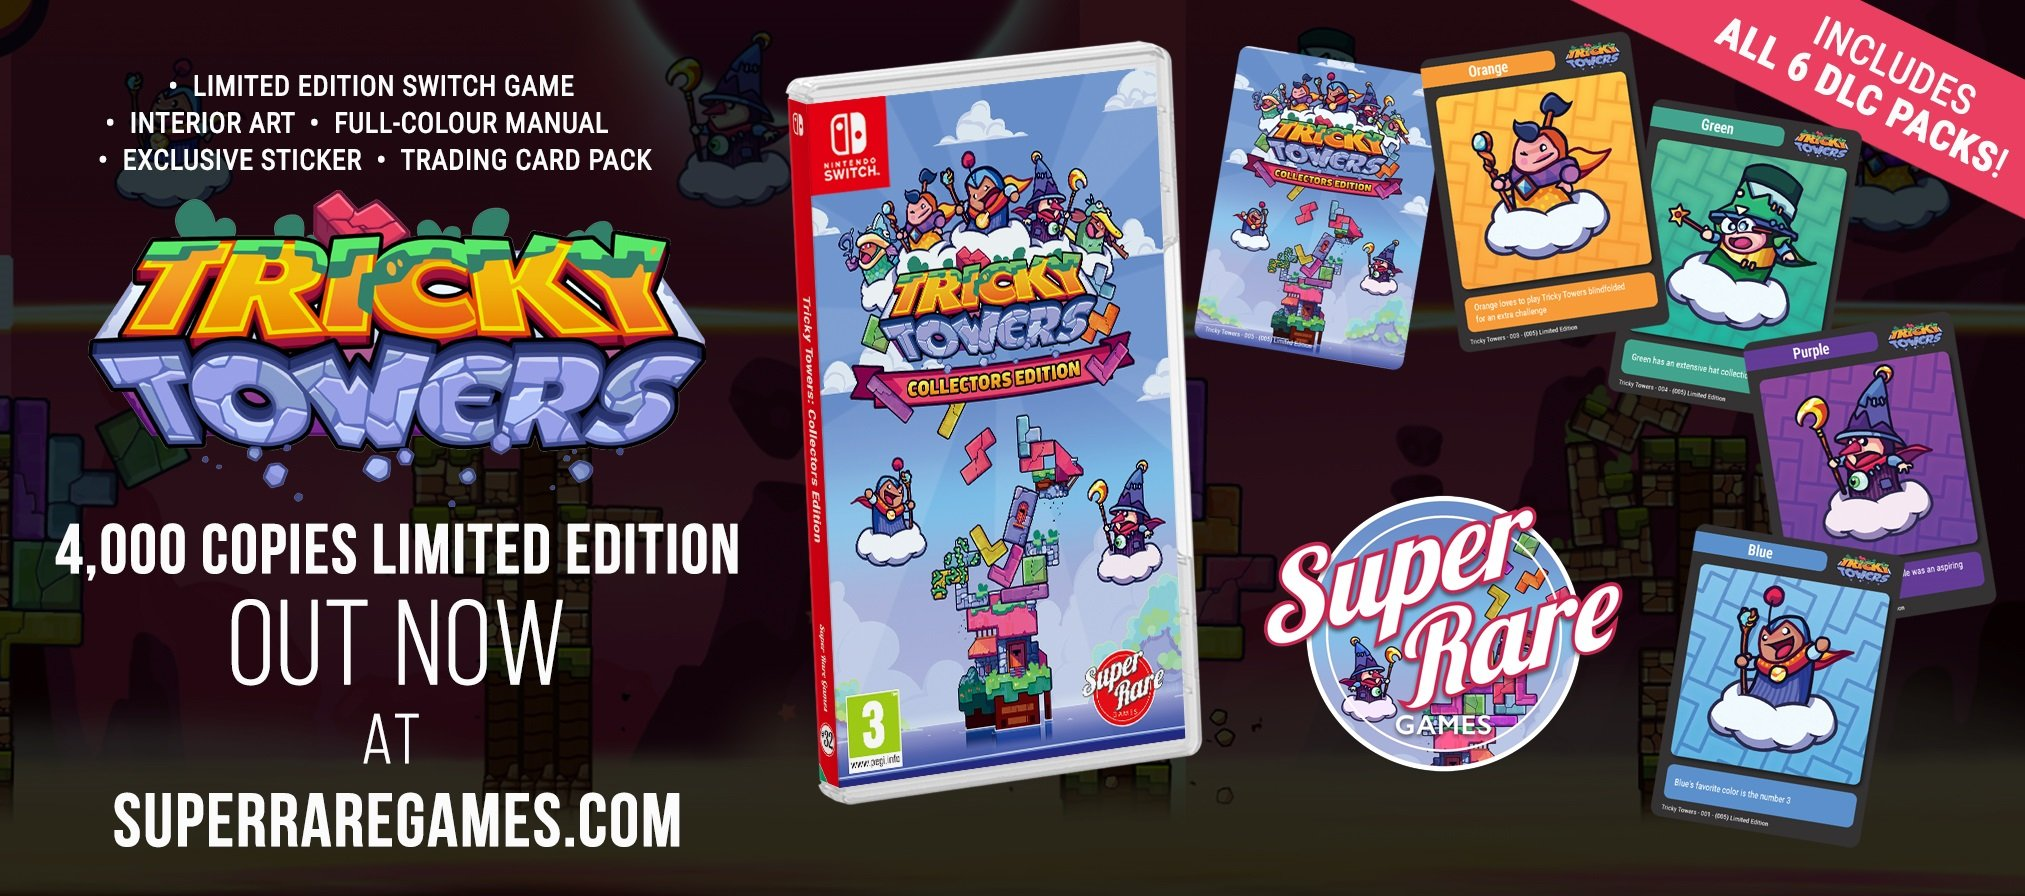 Super Rare Games Tricky Towers Switch limited edition contest